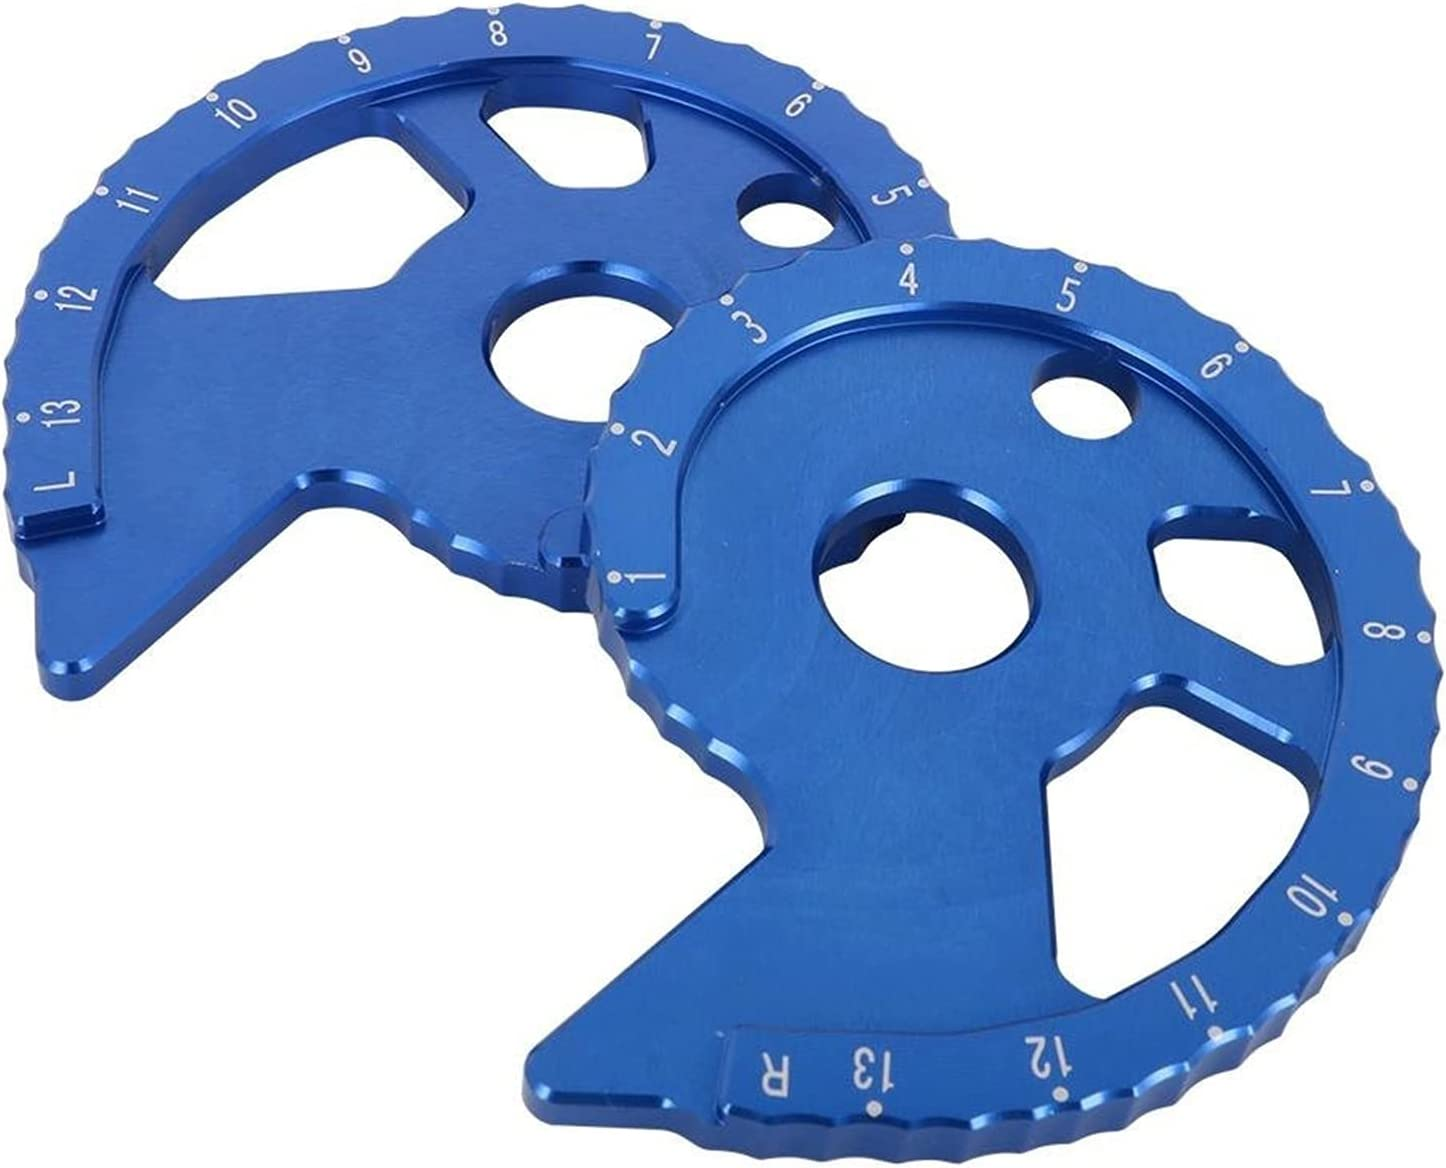 WYDH Low price Motorcycle Chain Manufacturer OFFicial shop Guards Aluminum Guide Sprocket